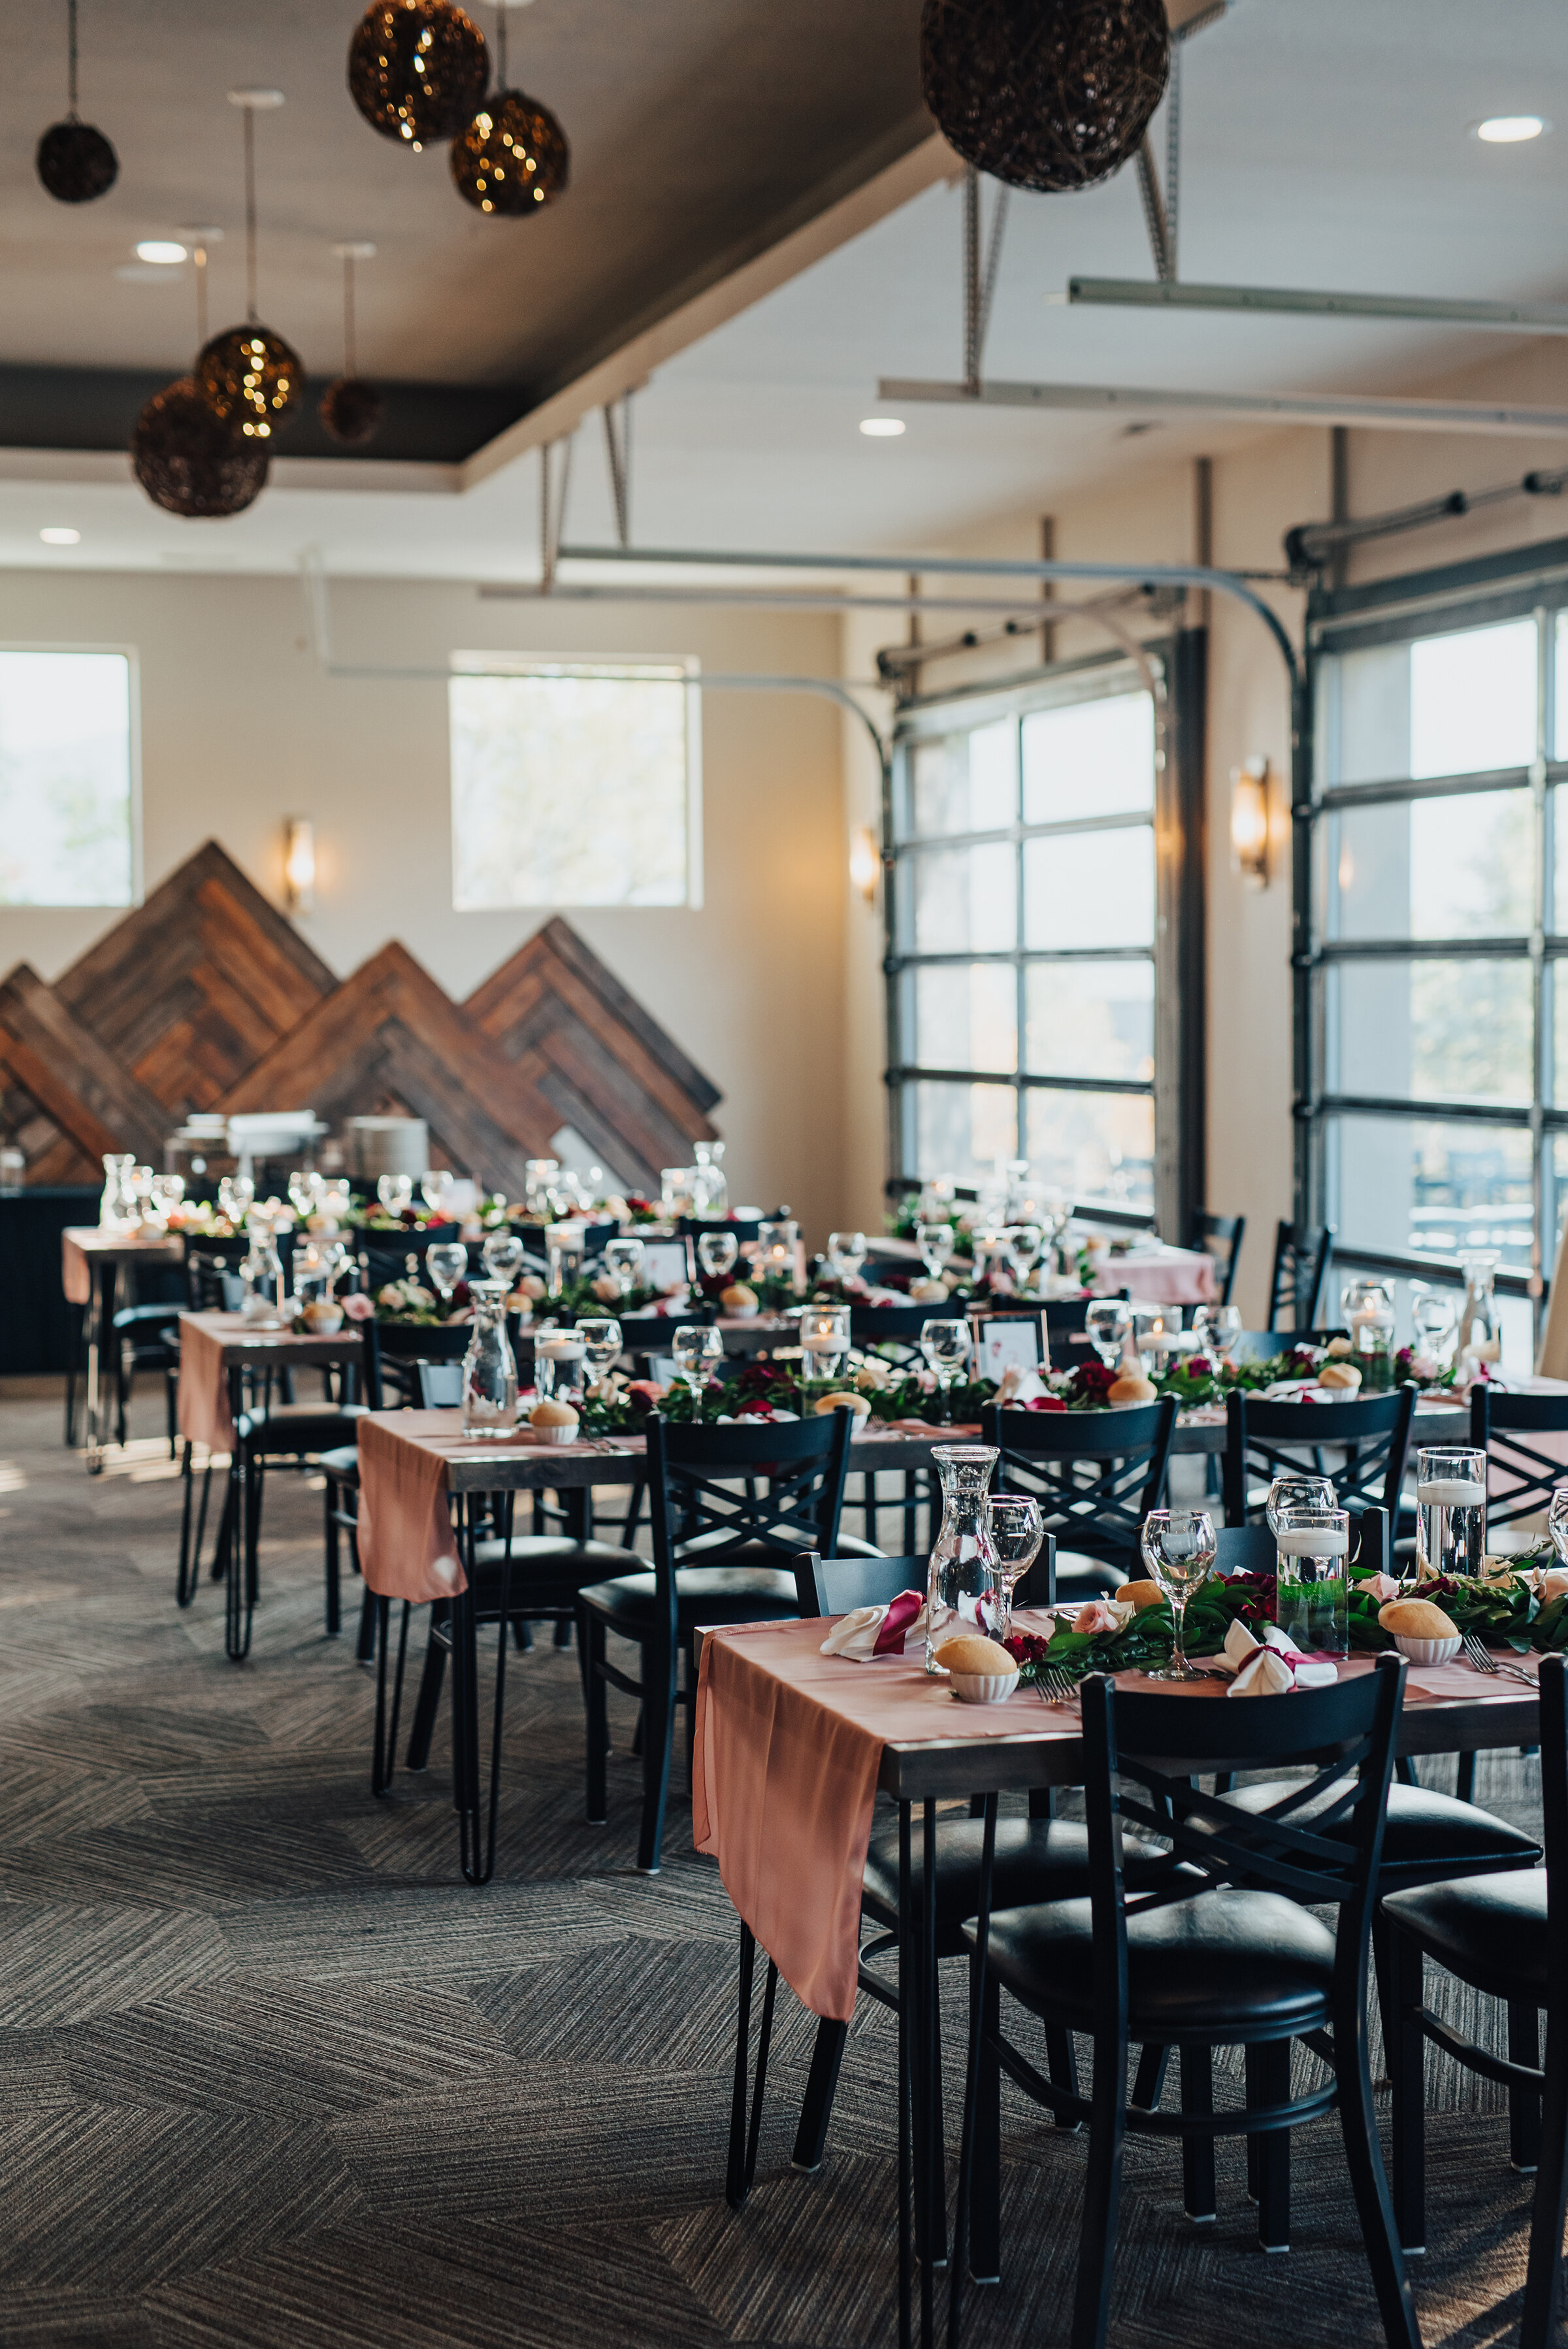 Gorgeous look at the before shot of a wedding luncheon in Logan, Utah by Kristi Alyse Photography. Luncheon table settings rehearsal dinner inspo greenery center pieces wine glasses pink tablecloth wedding day luncheon dinner details for the bride and groom wedding day northern Utah wedding photography Kristi Alyse #weddinginspo #loganutah  #brideandgroom #utahbride #utahweddingphotographer#meaningfulmoment #weddingphotography #northernutahwedding #weddinghairstyles #weddingday #bridals